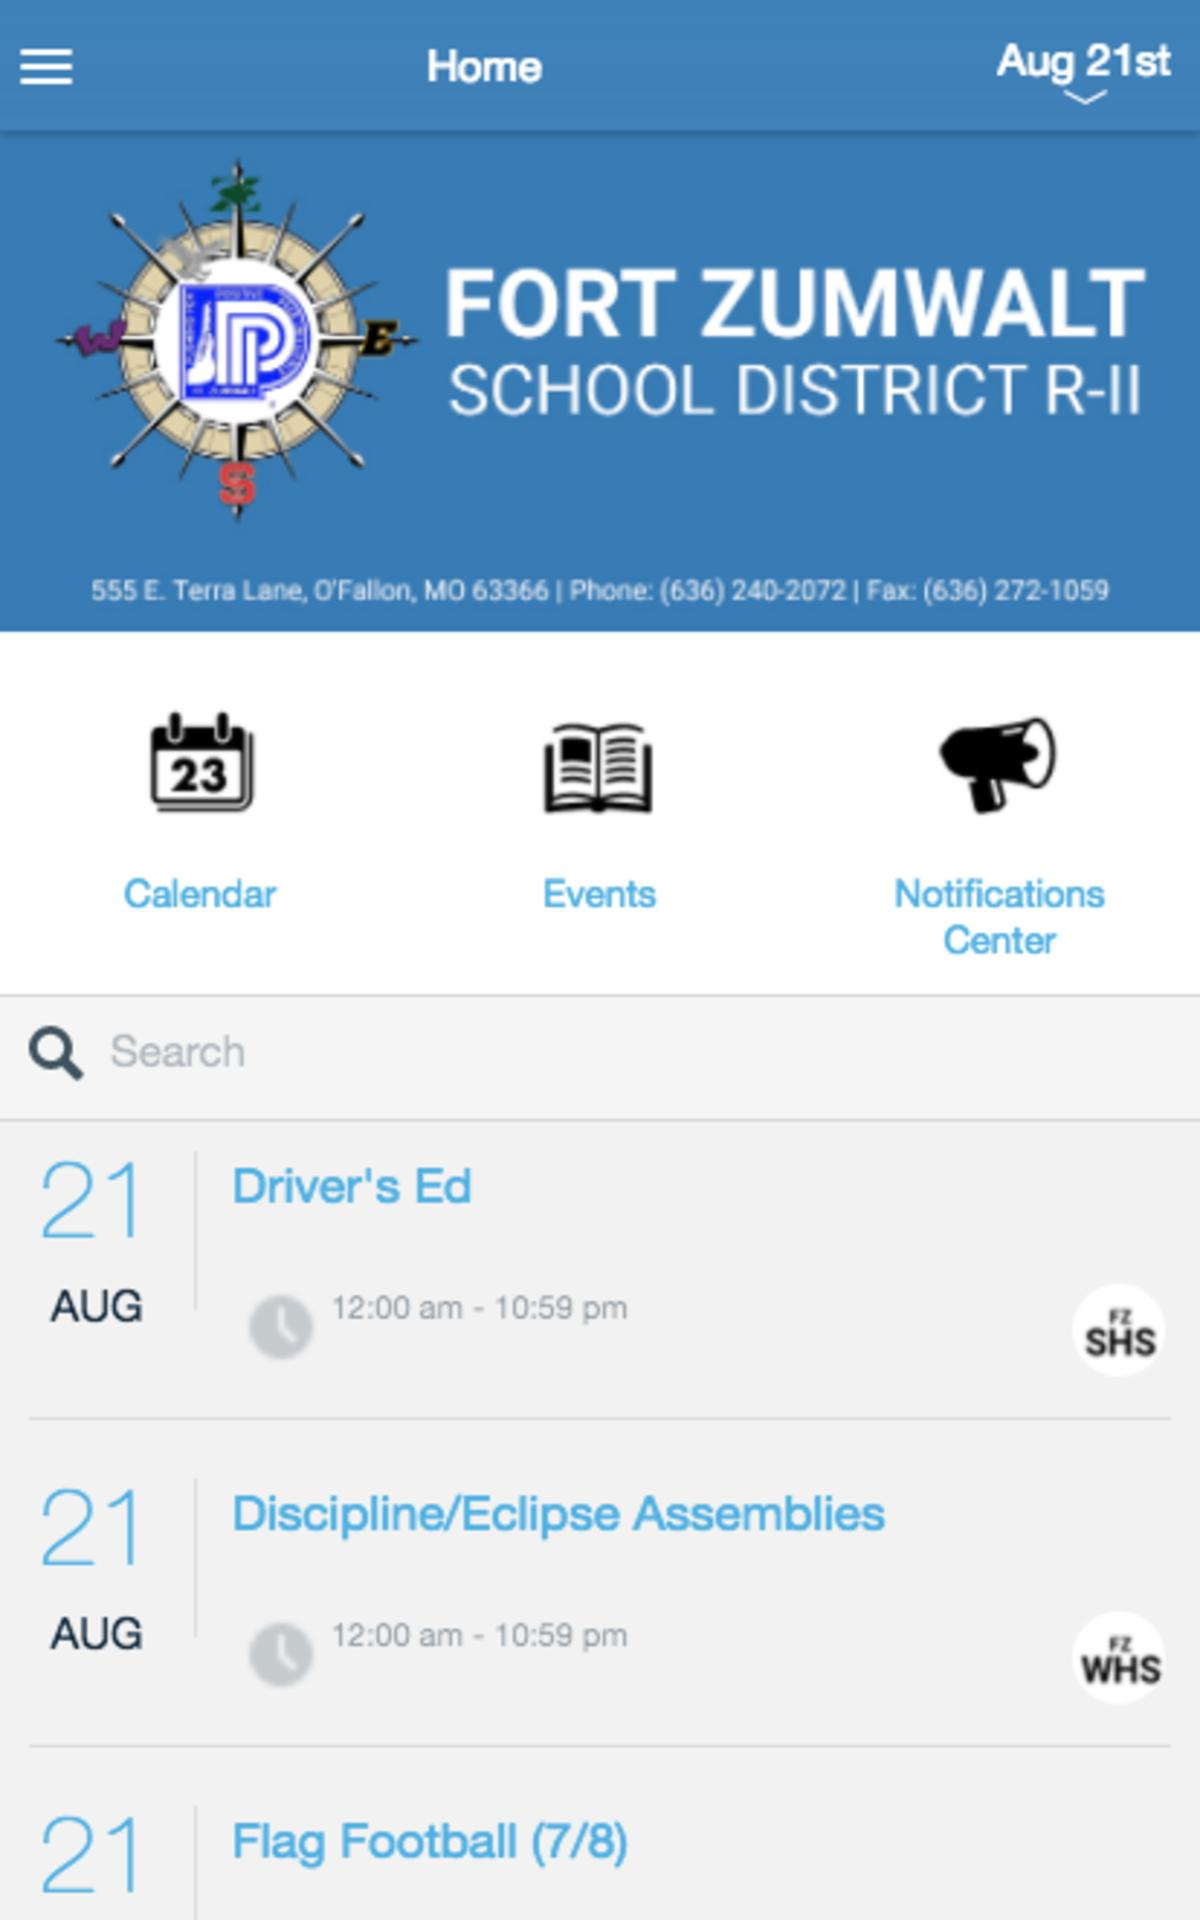 Fort Zumwalt School District For Android - Apk Download With Fort Zumwalt Academic Calendar